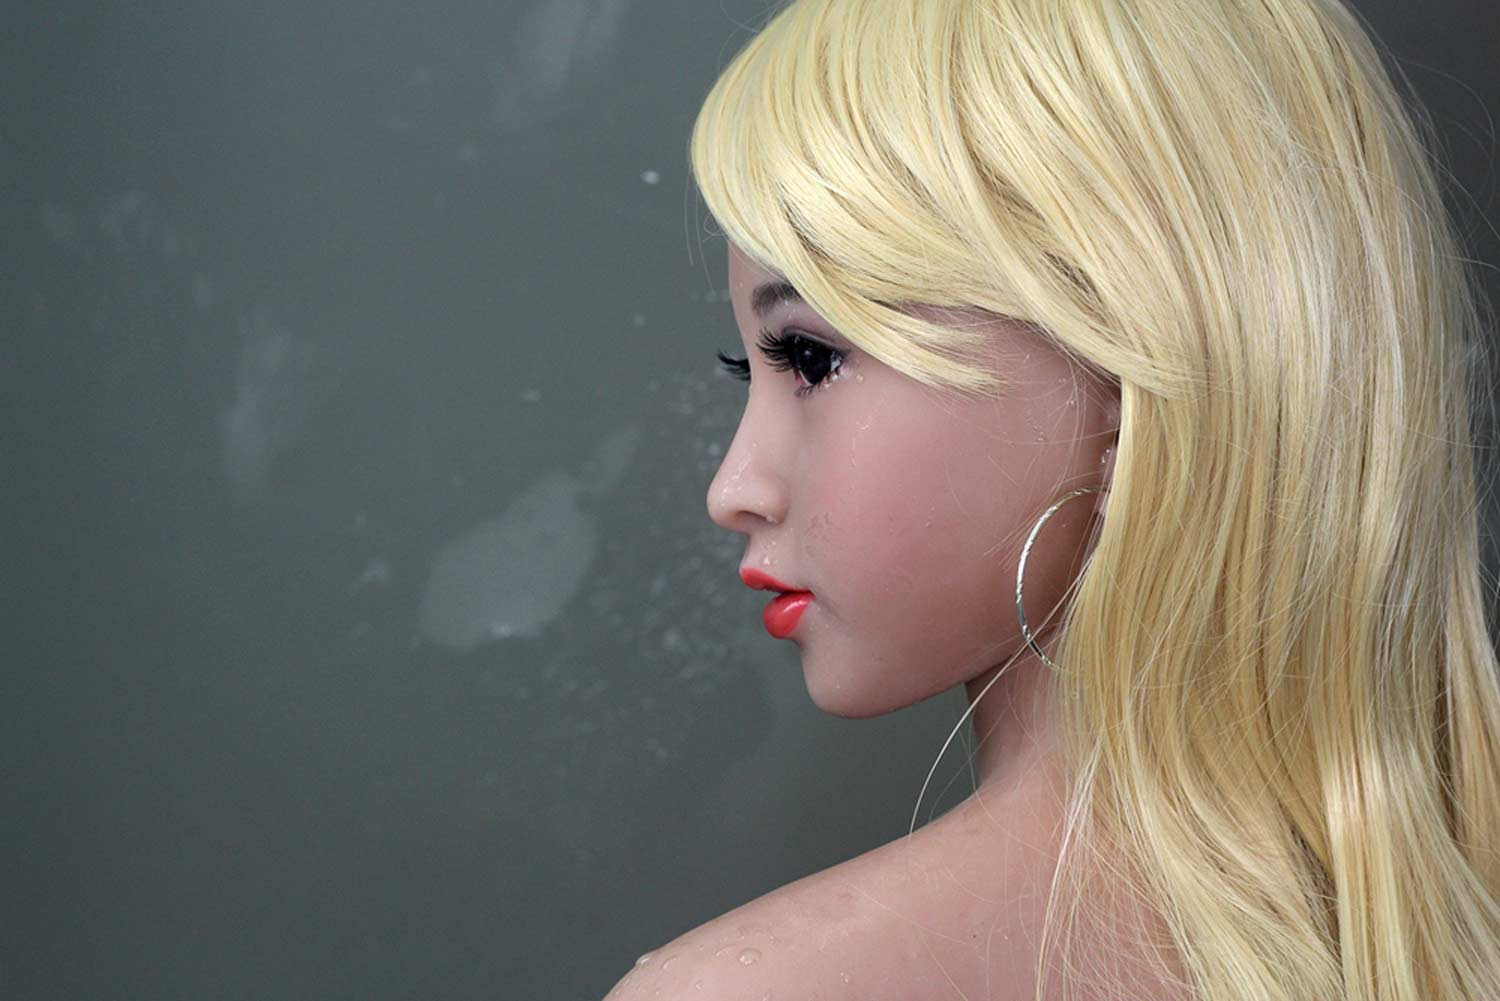 Sex doll with long blonde hair